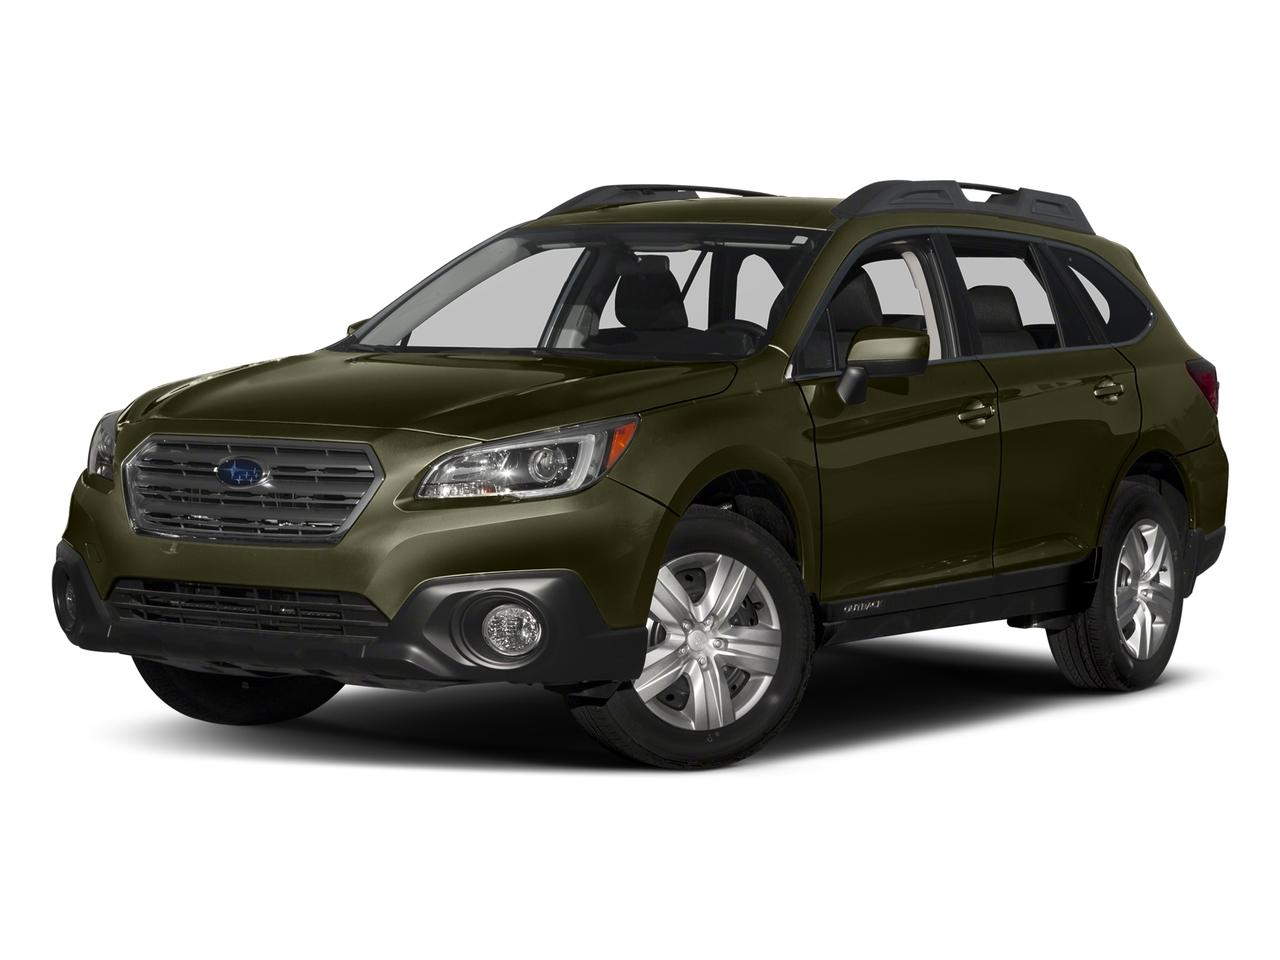 2017 Subaru Outback Vehicle Photo in Doylestown, PA 18902